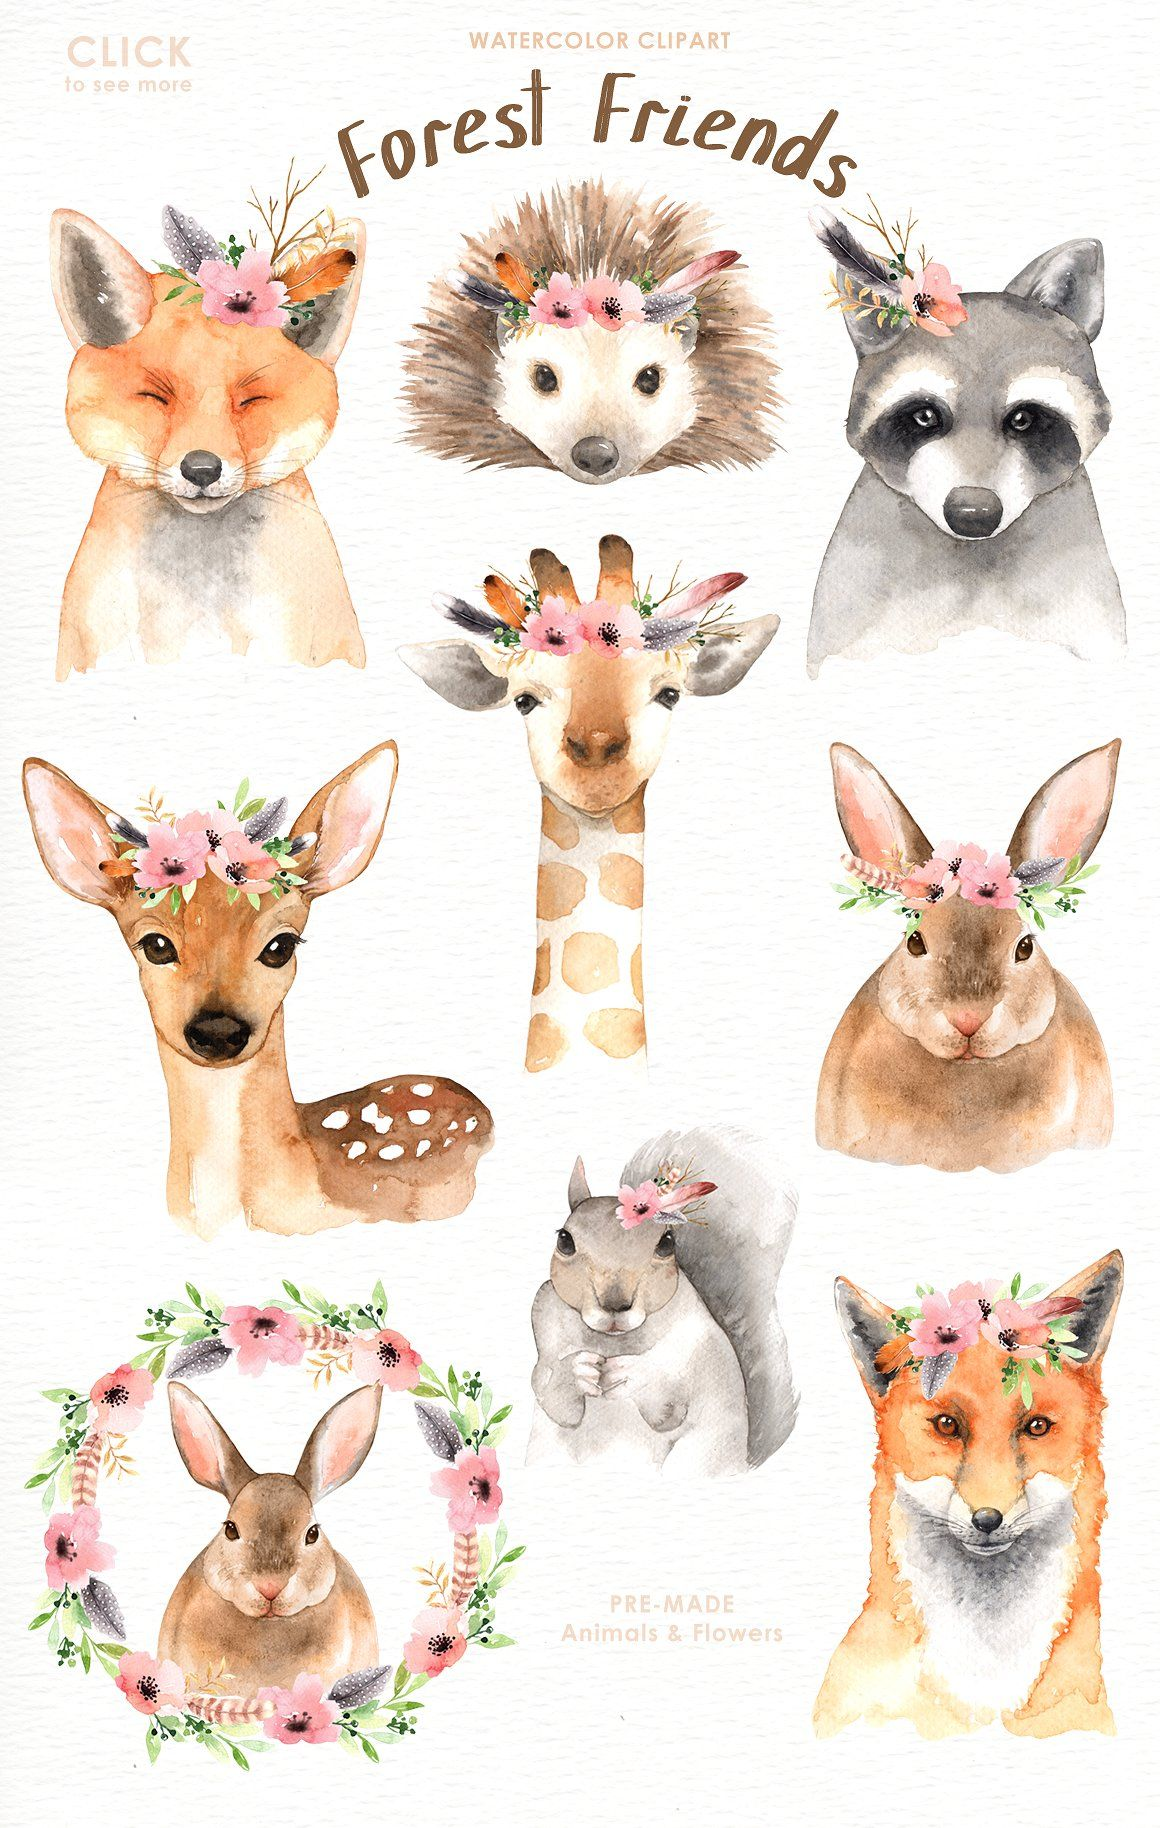 Forest Friends Watercolor Clip Art Animal Drawings Cute